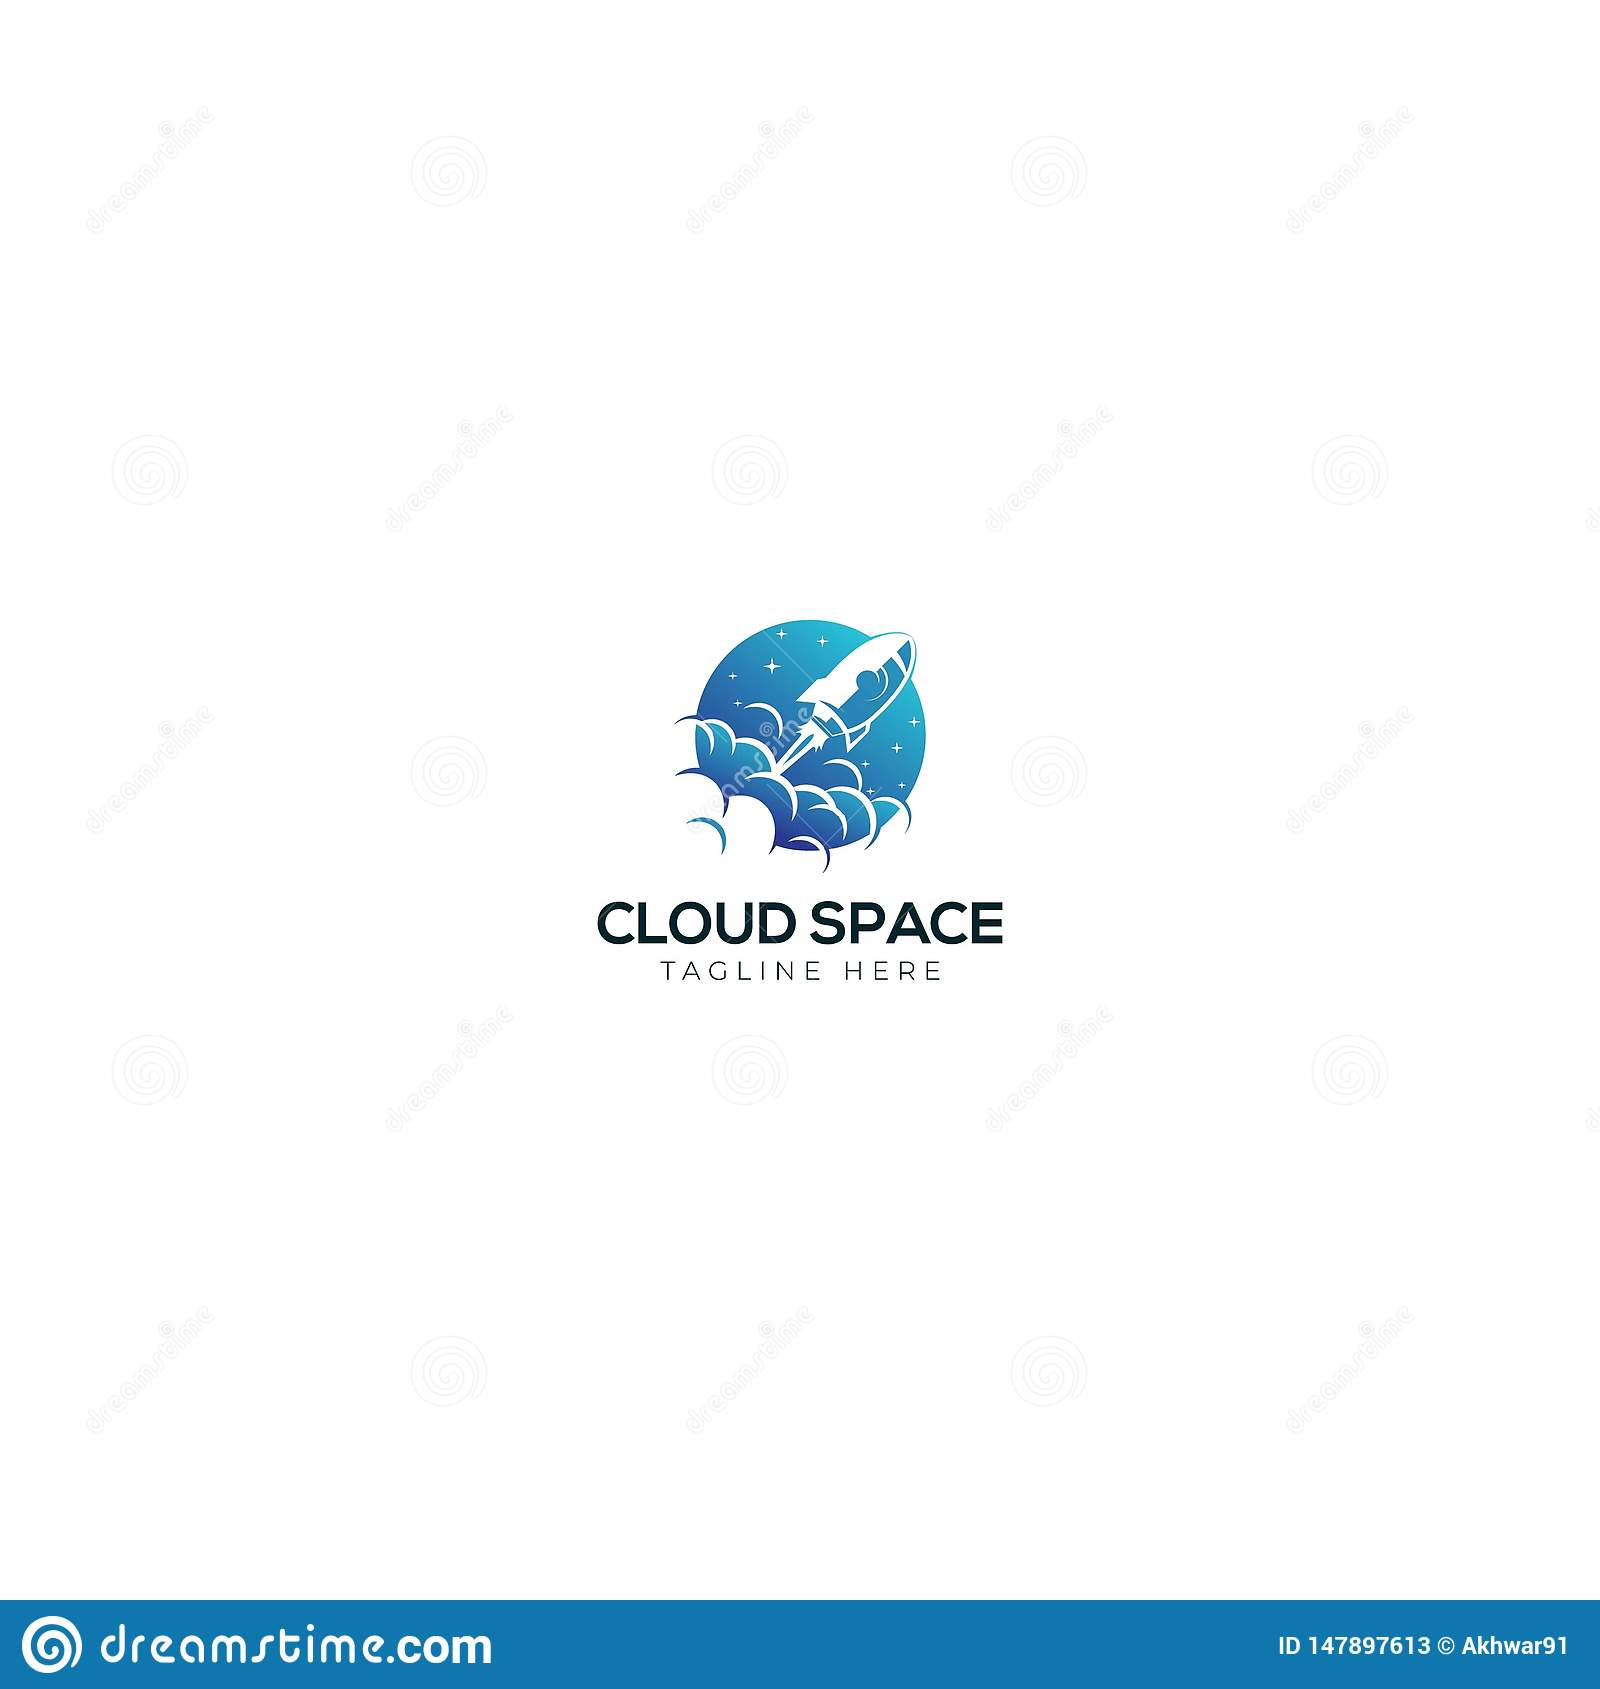 Rocket And Cloud Space logo Design